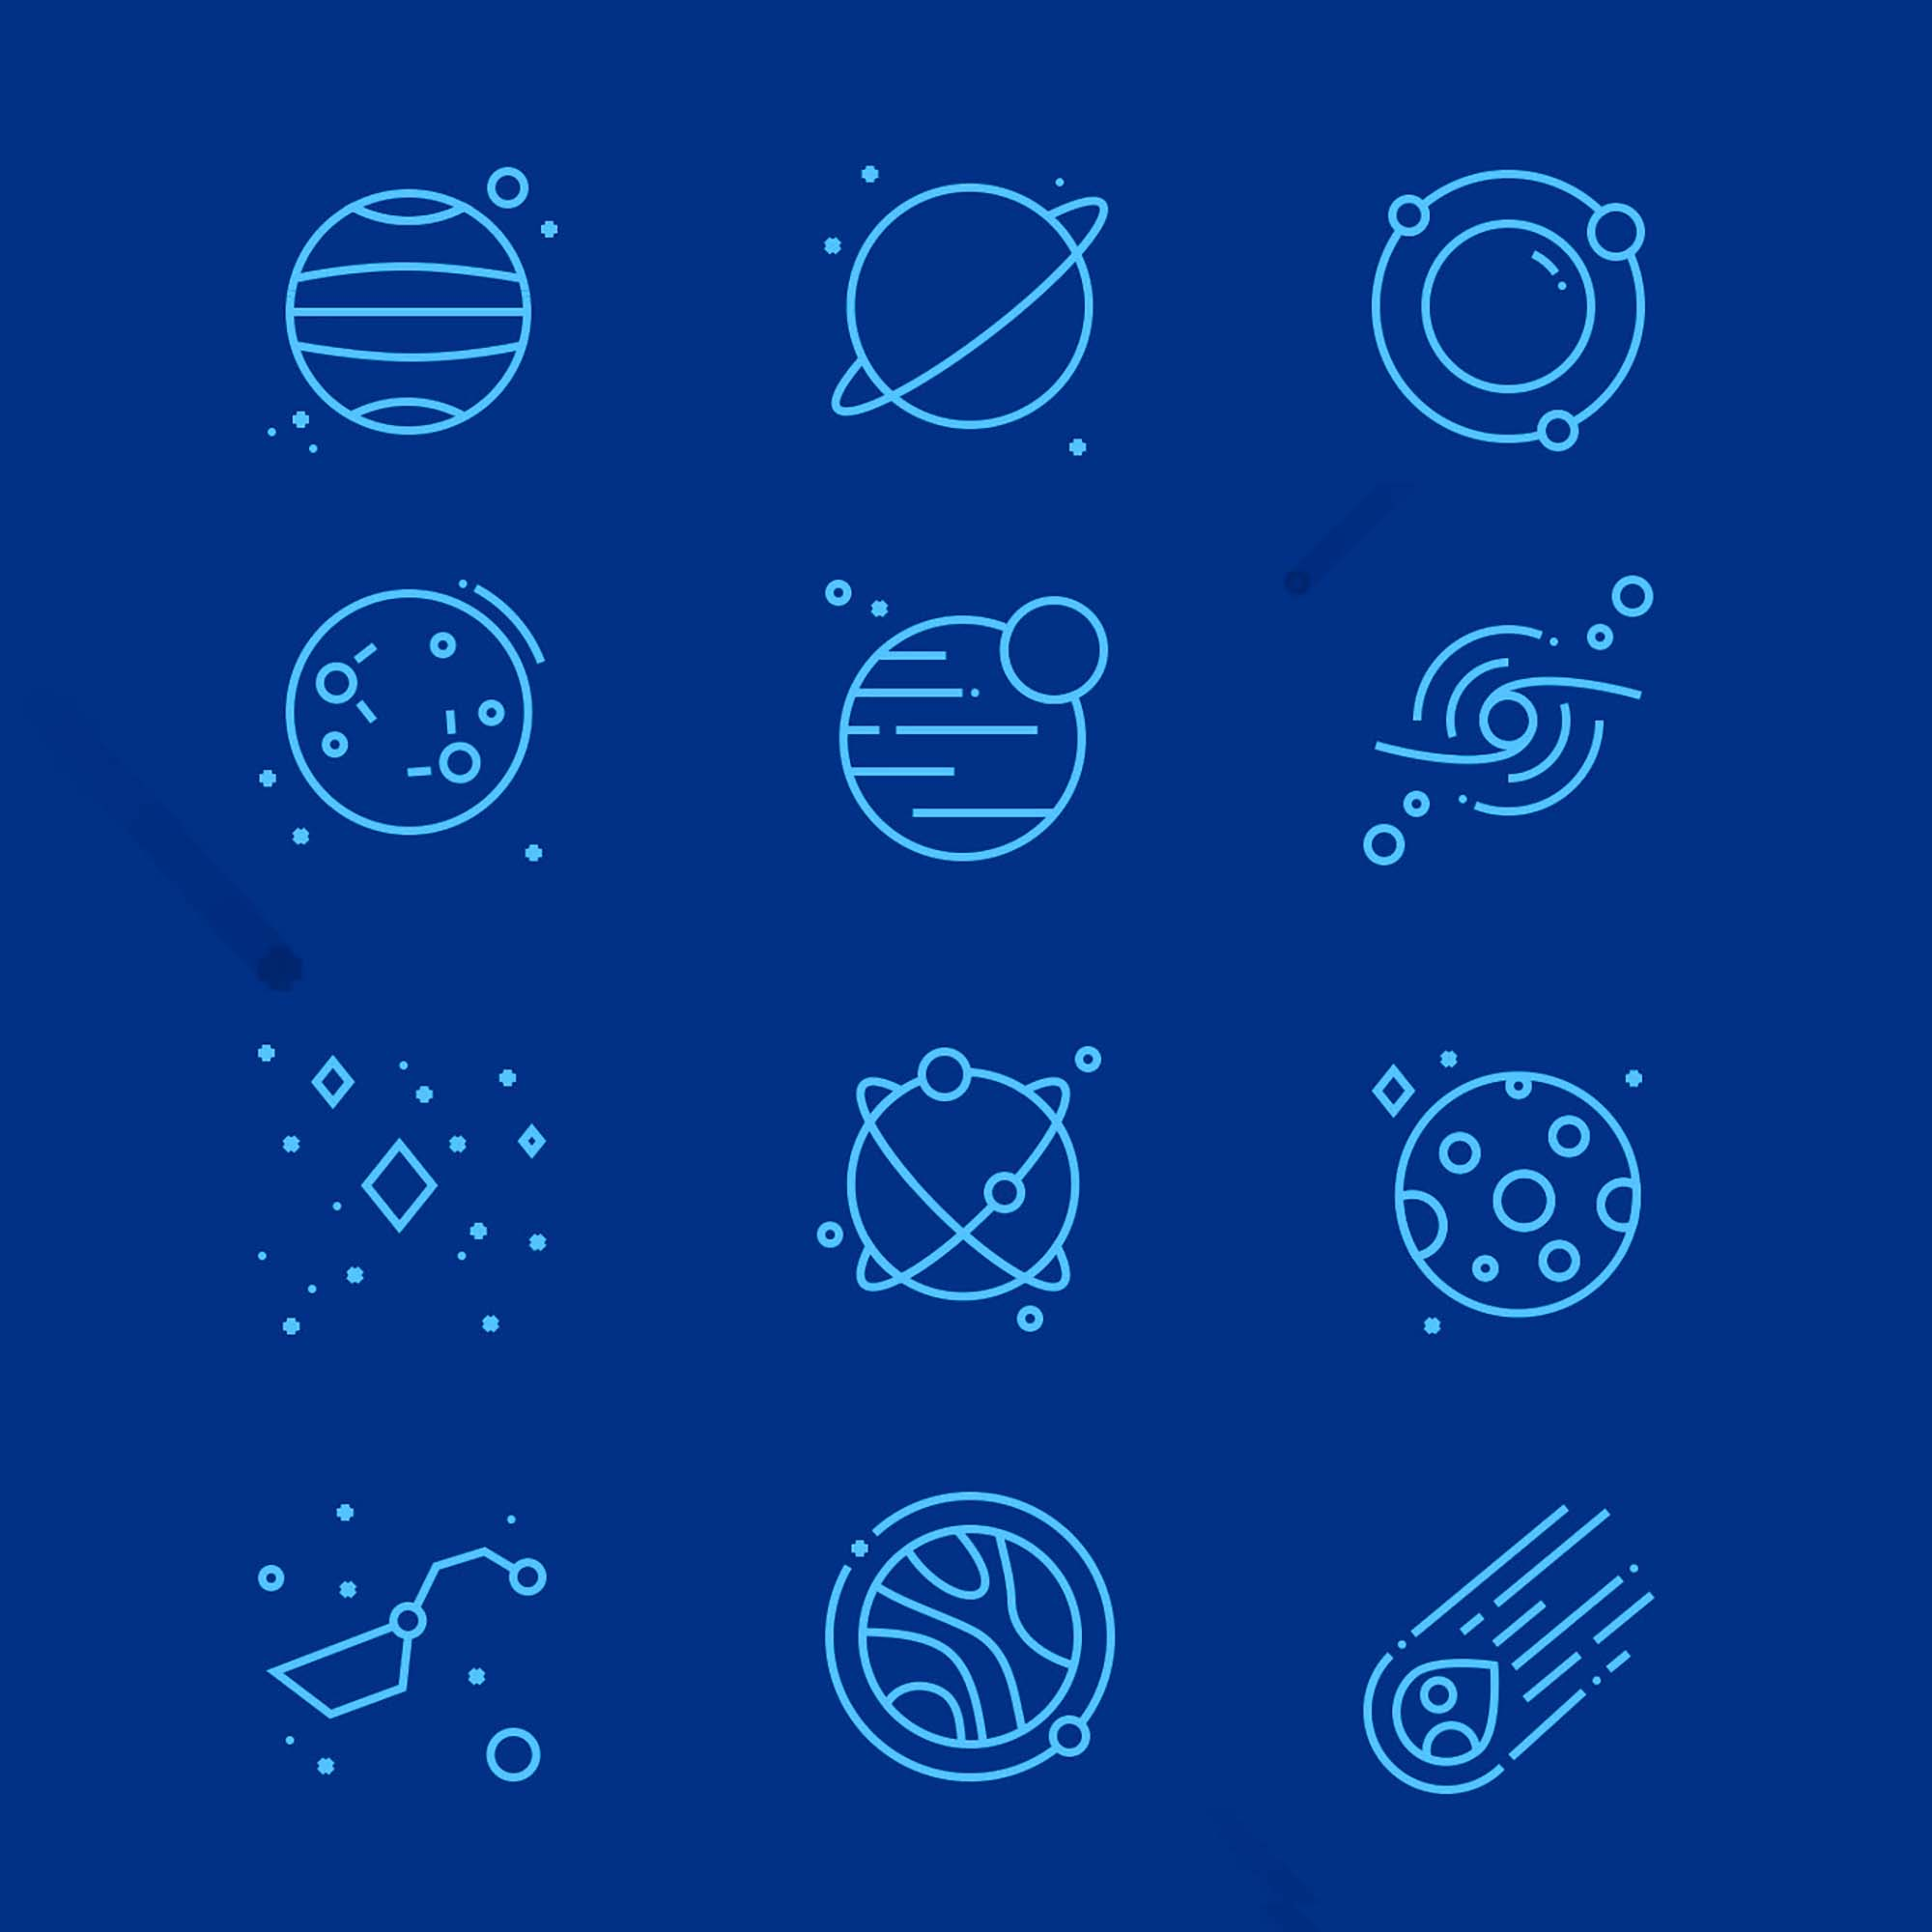 Space Iconography 1